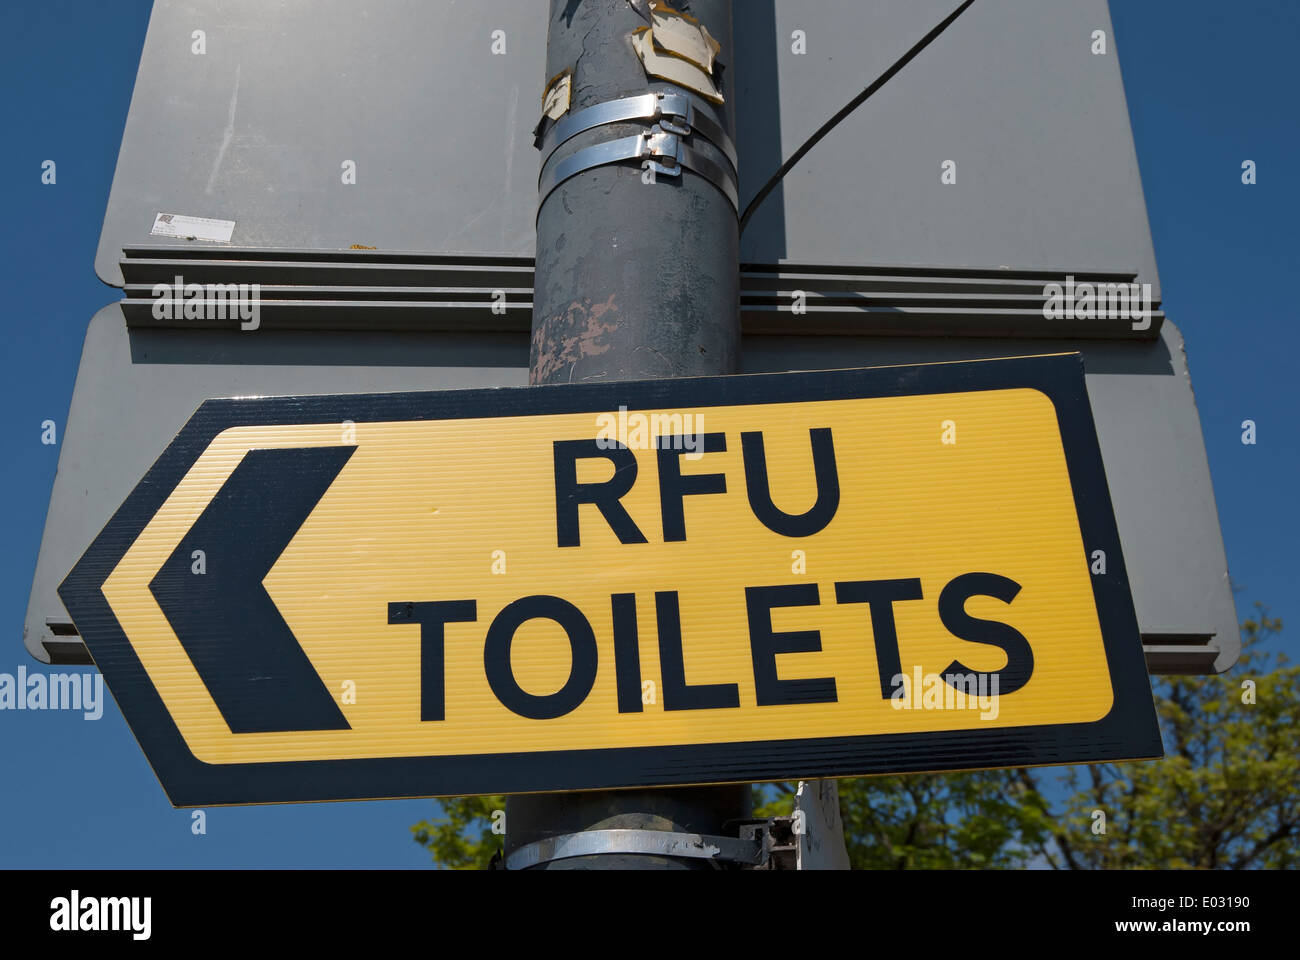 sign for rfu toilets, or rugby football union toilets, in twickenham, middlesex, england - Stock Image